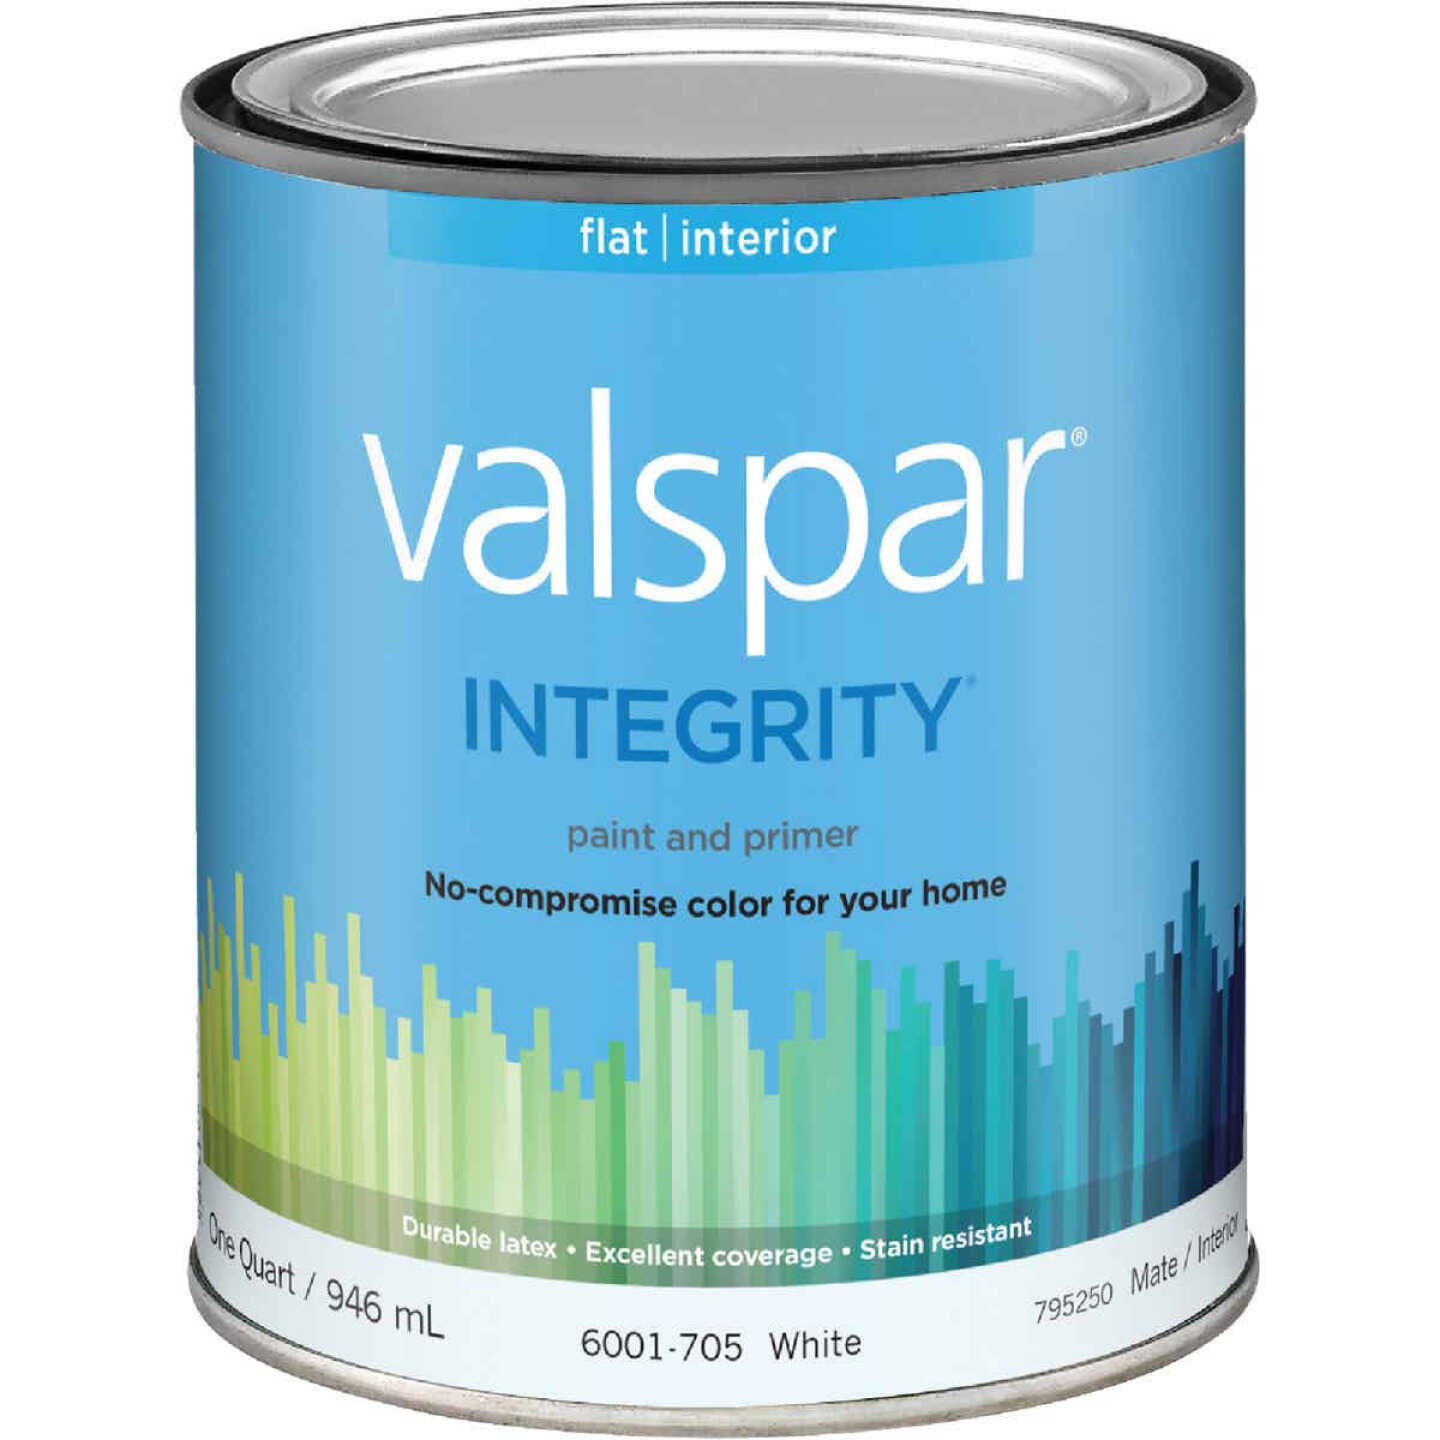 Valspar Integrity Latex Paint And Primer Flat Interior Wall Paint, White, 1 Qt. Image 1